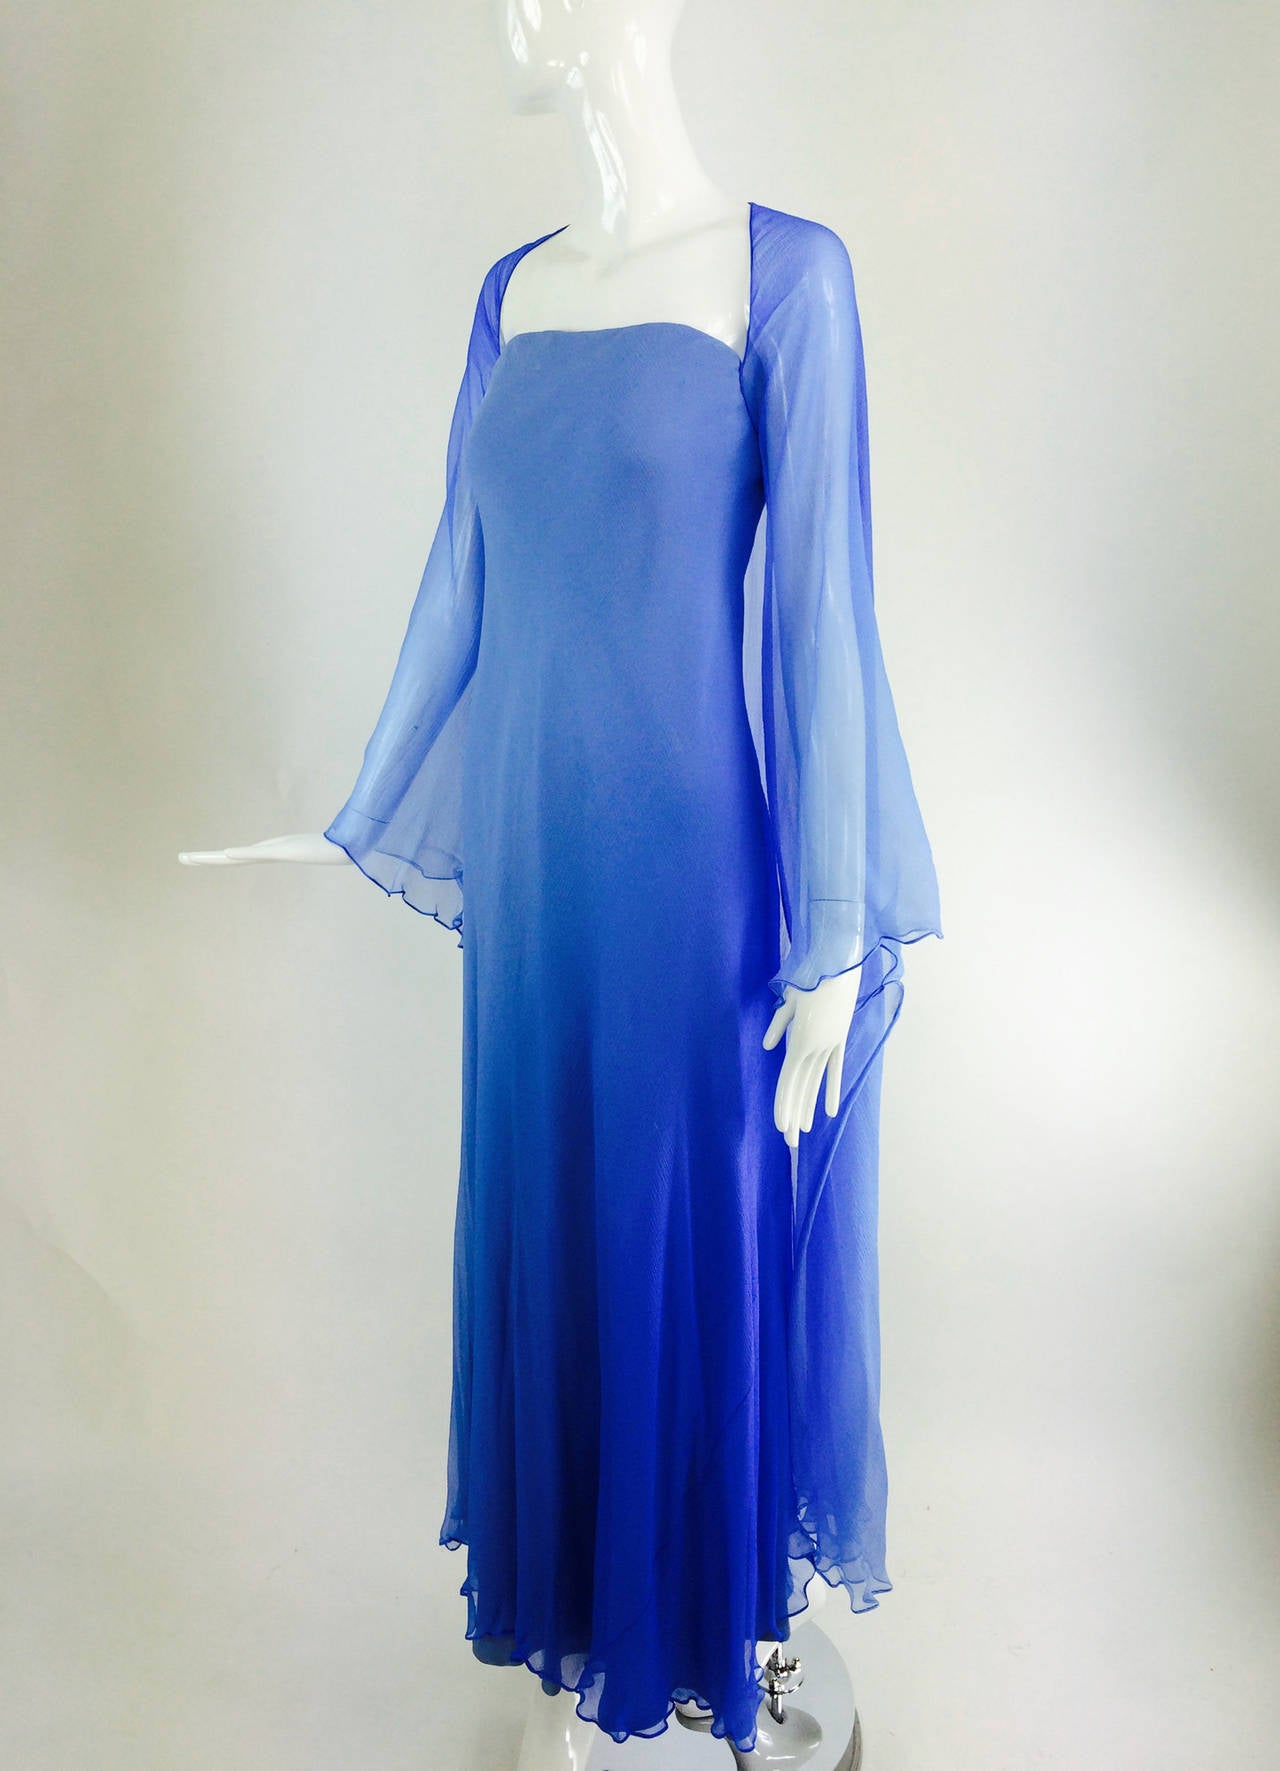 Fiandaca Cerulean Blue tonal silk chiffon gown 1990s For Sale 4